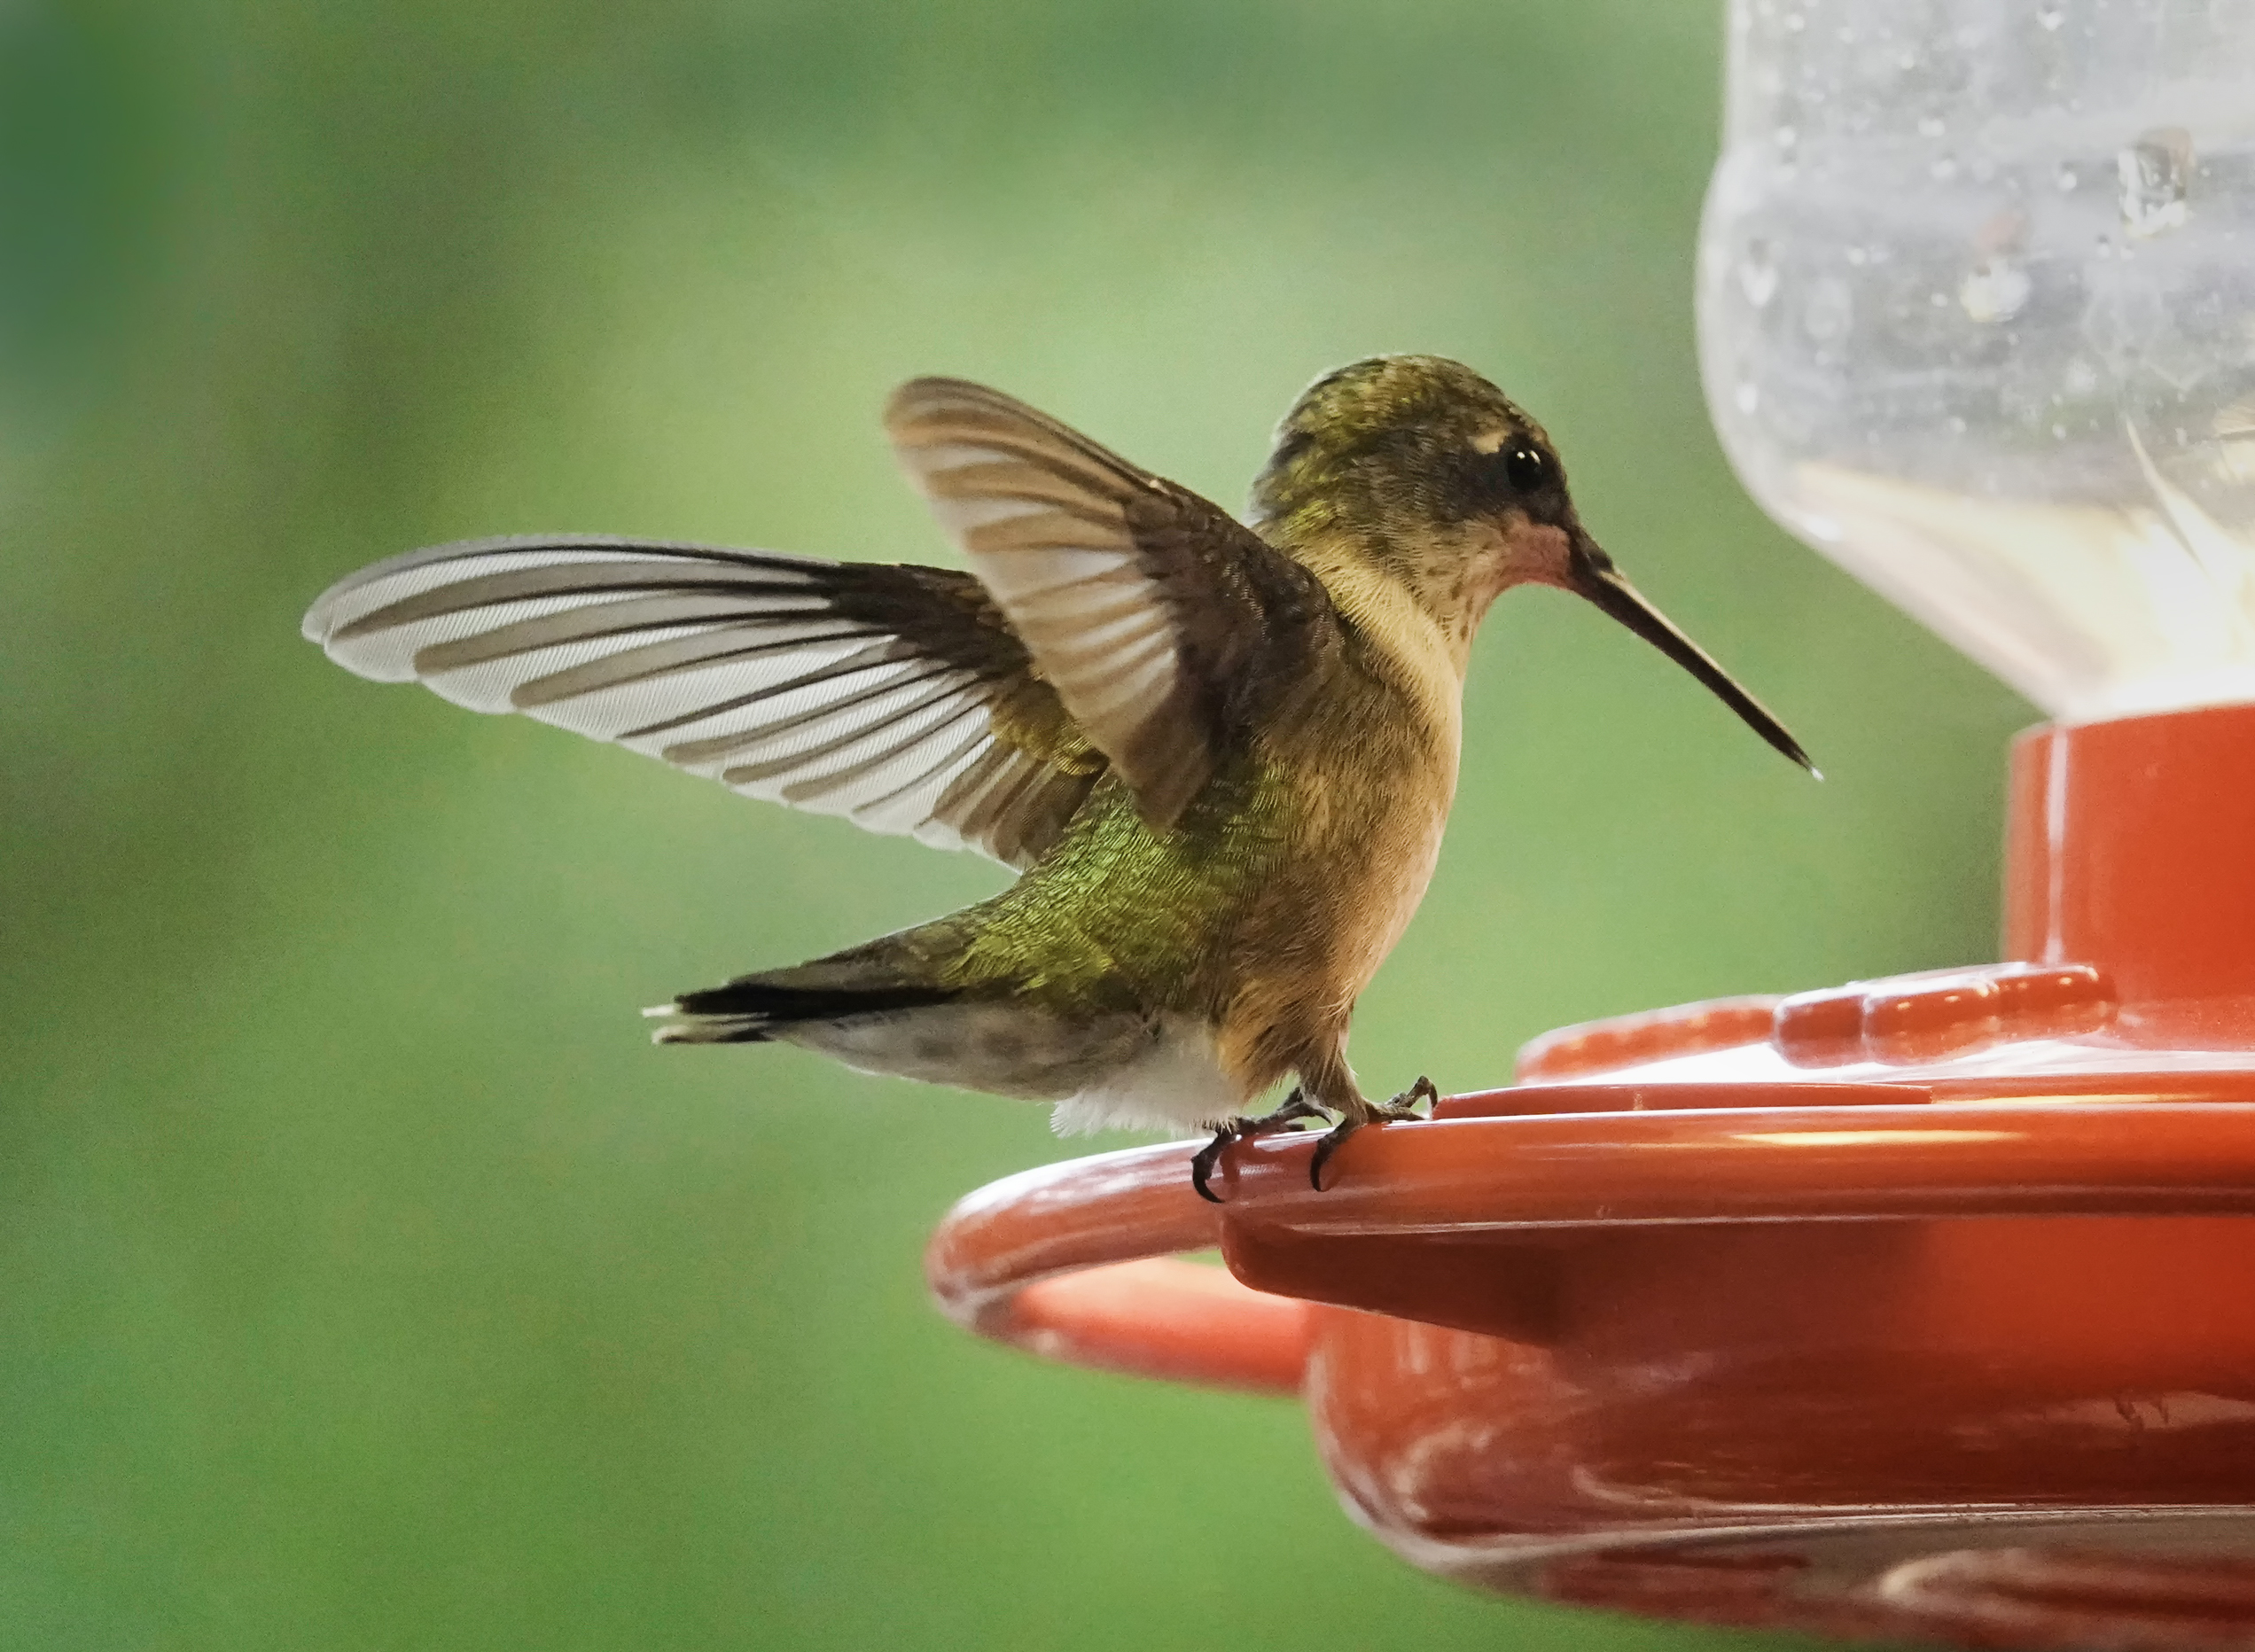 Divine Inspiration Photo #23A - Ruby-Throated Hummingbird #3 - 8 x 10